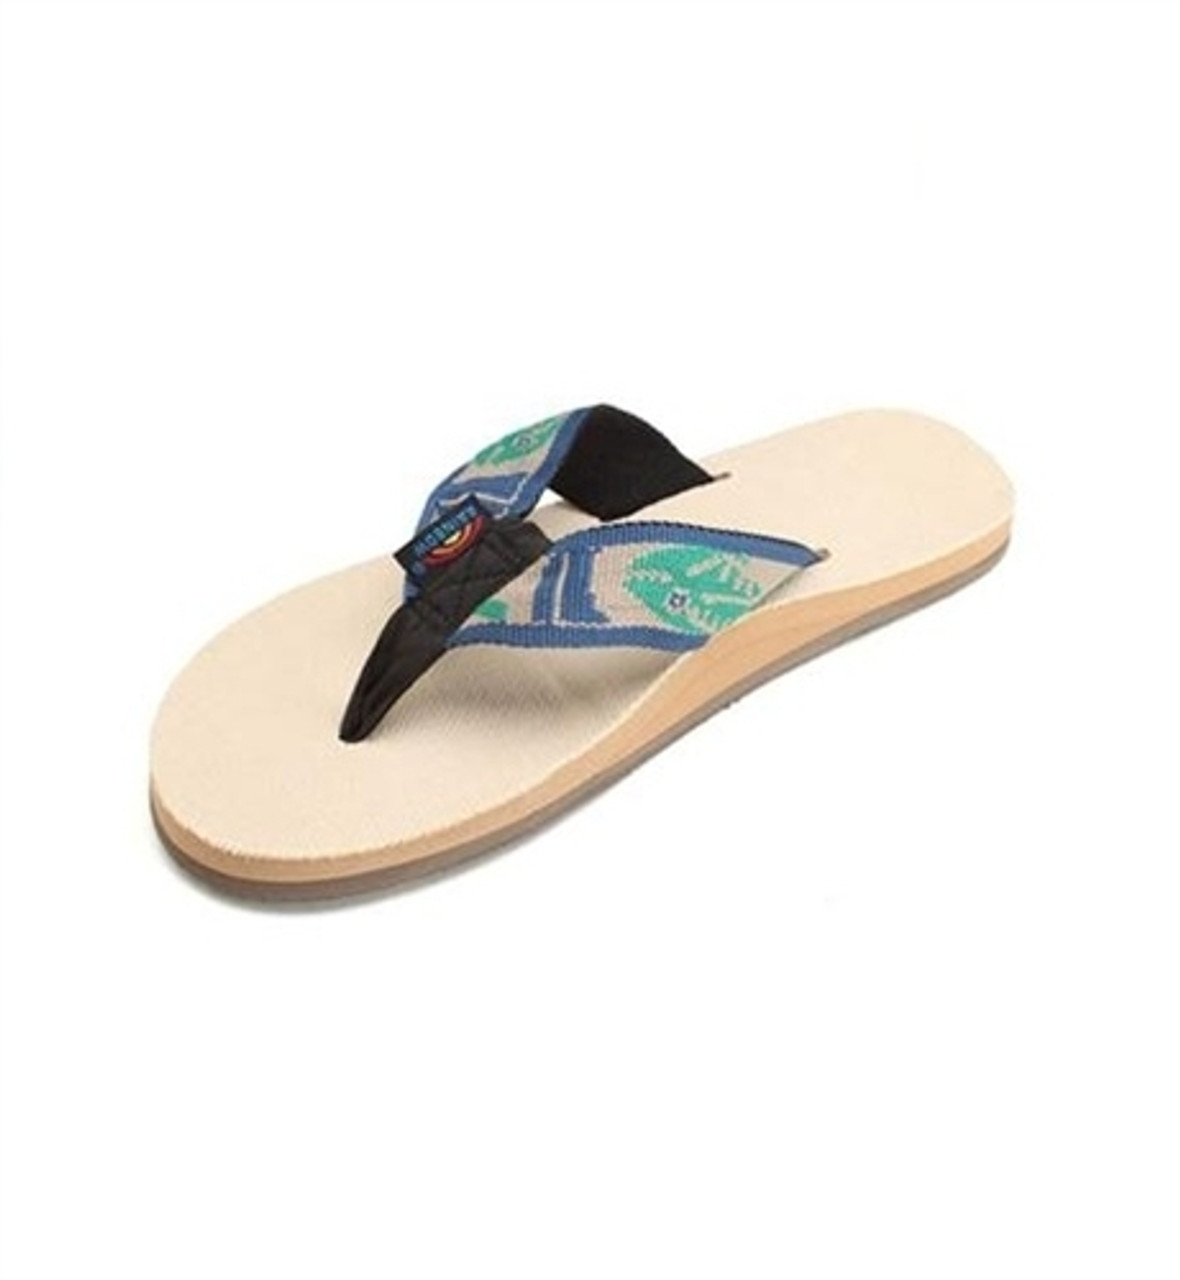 49e916460 Rainbow Sandals 301 Ahpfs Mens Natural Hemp Green Fish | Boardparadise.com